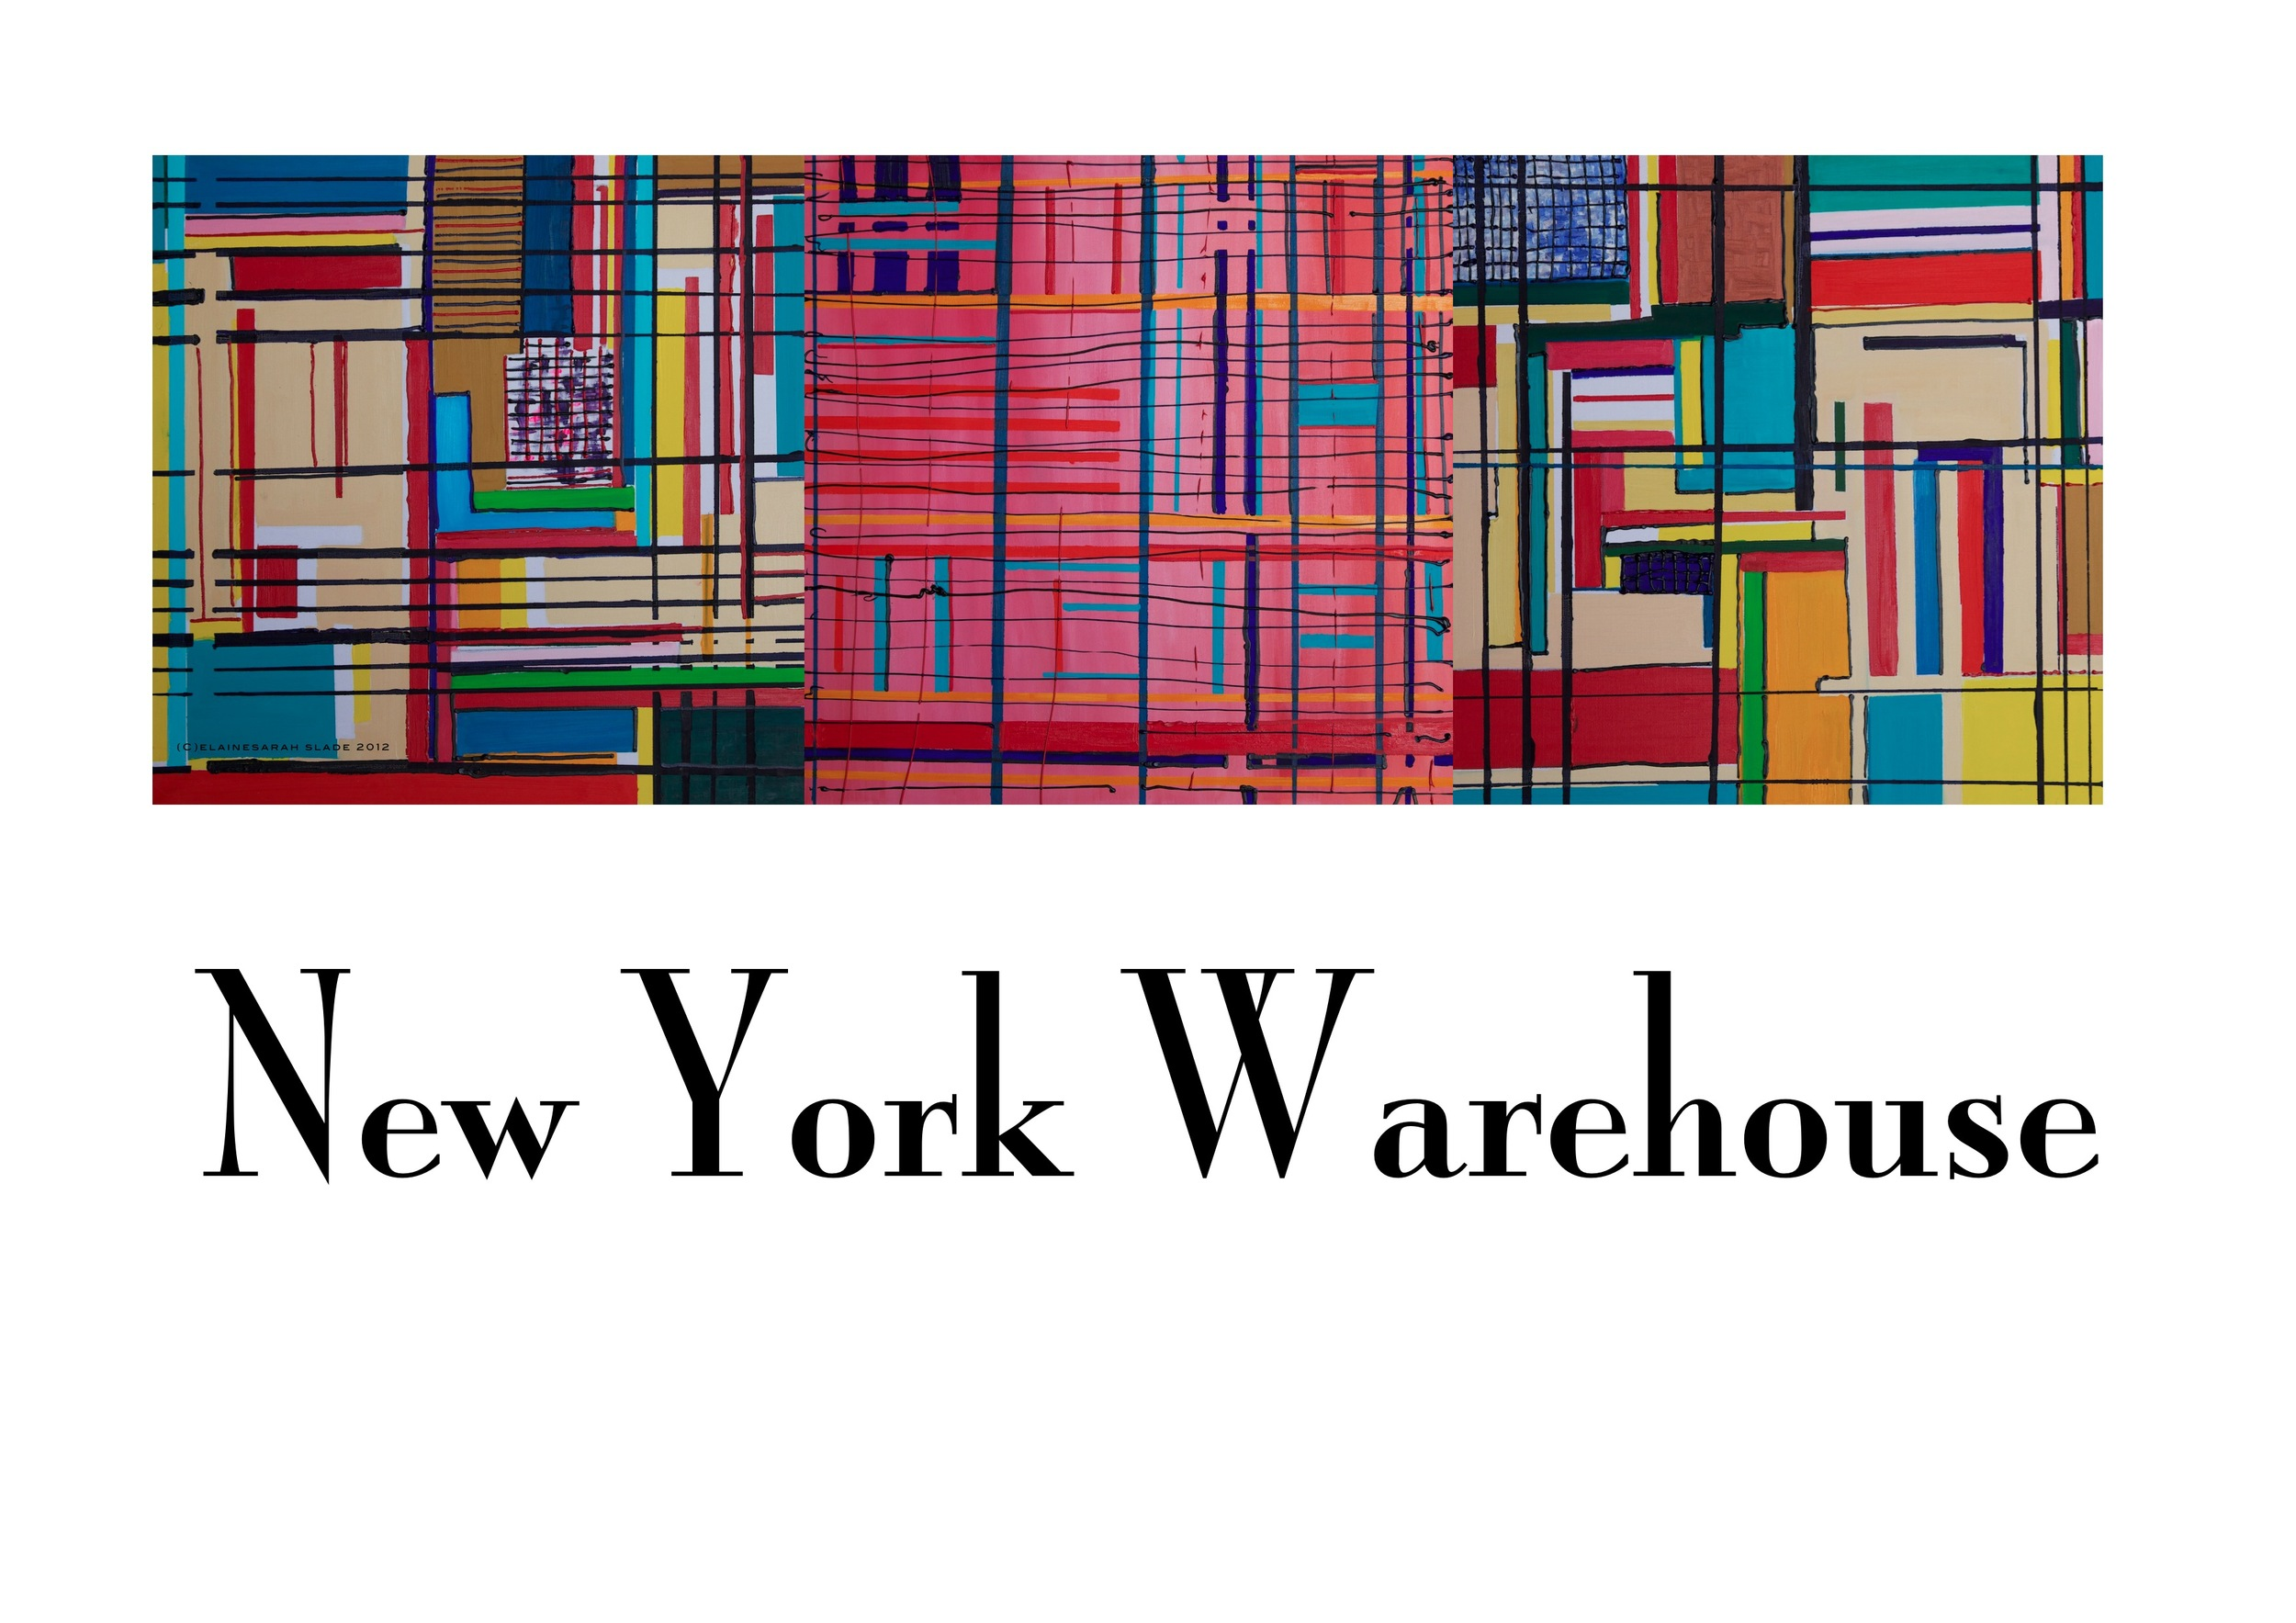 New York Warehouse